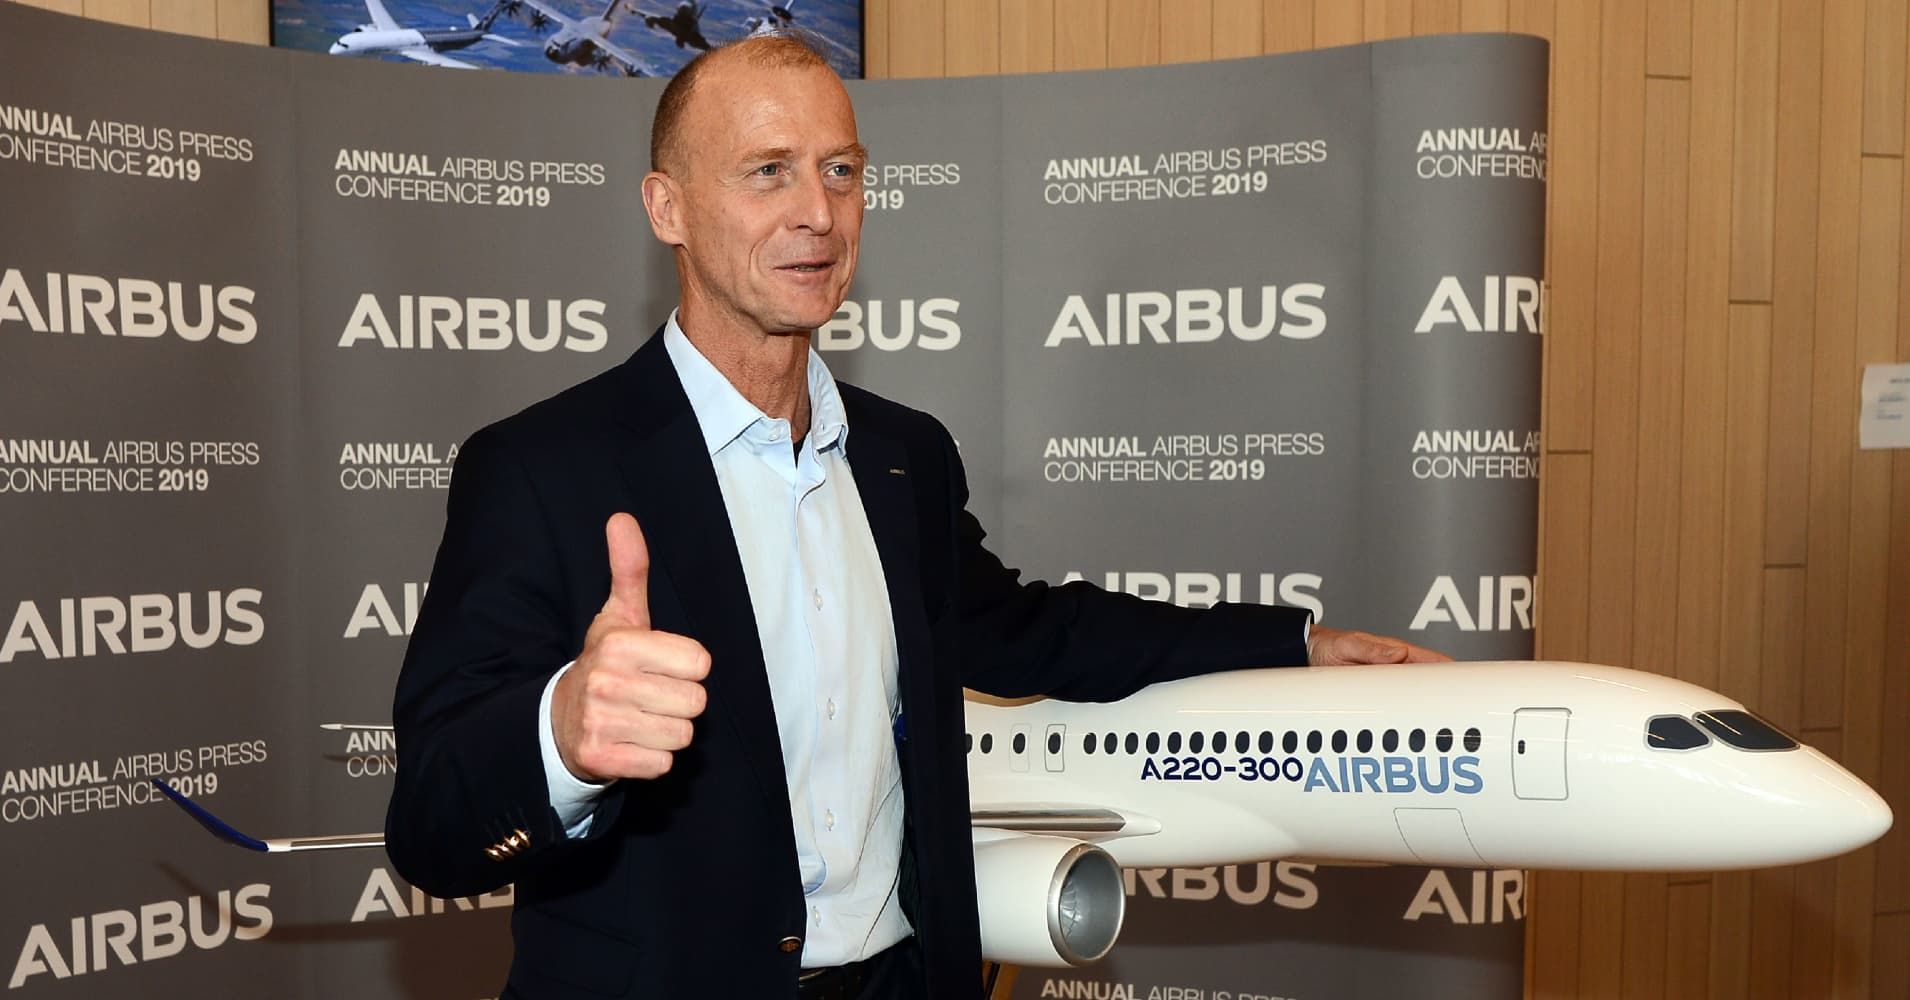 Airbus is spending tens of millions on Brexit preparations, CEO says